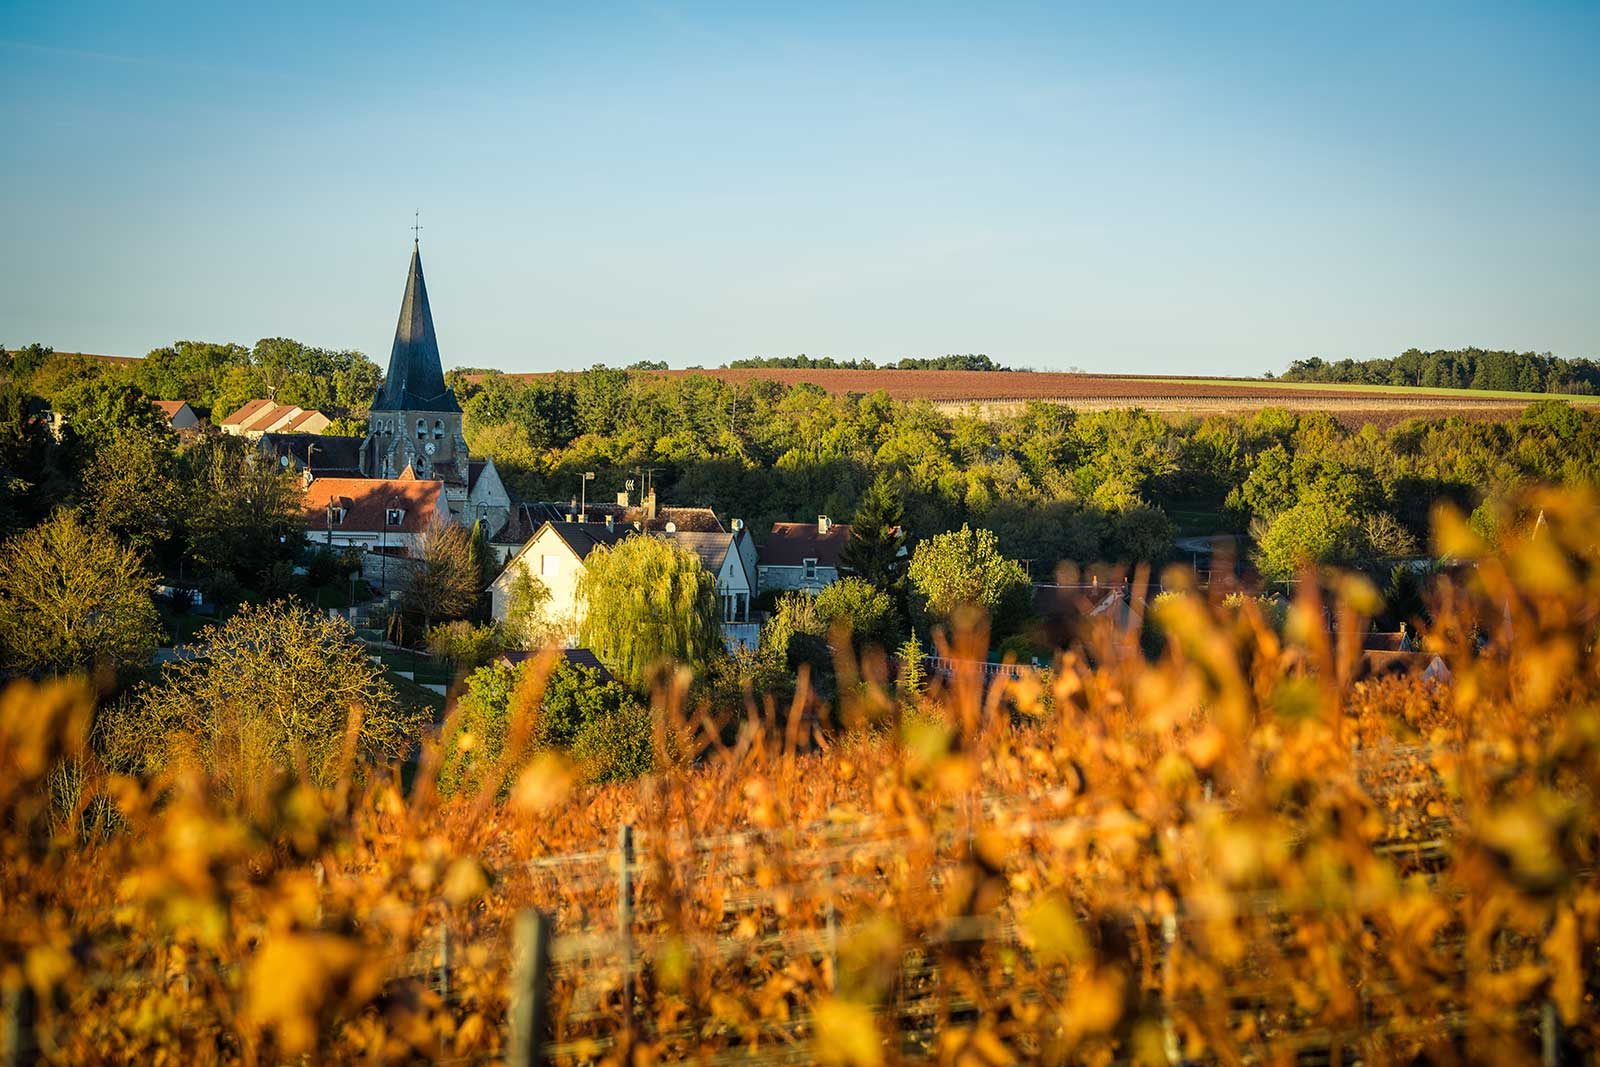 The village of Beine lies just west of the town of Chablis. ©BIVB – Bureau Interprofessionel des Vins de Bourgogne